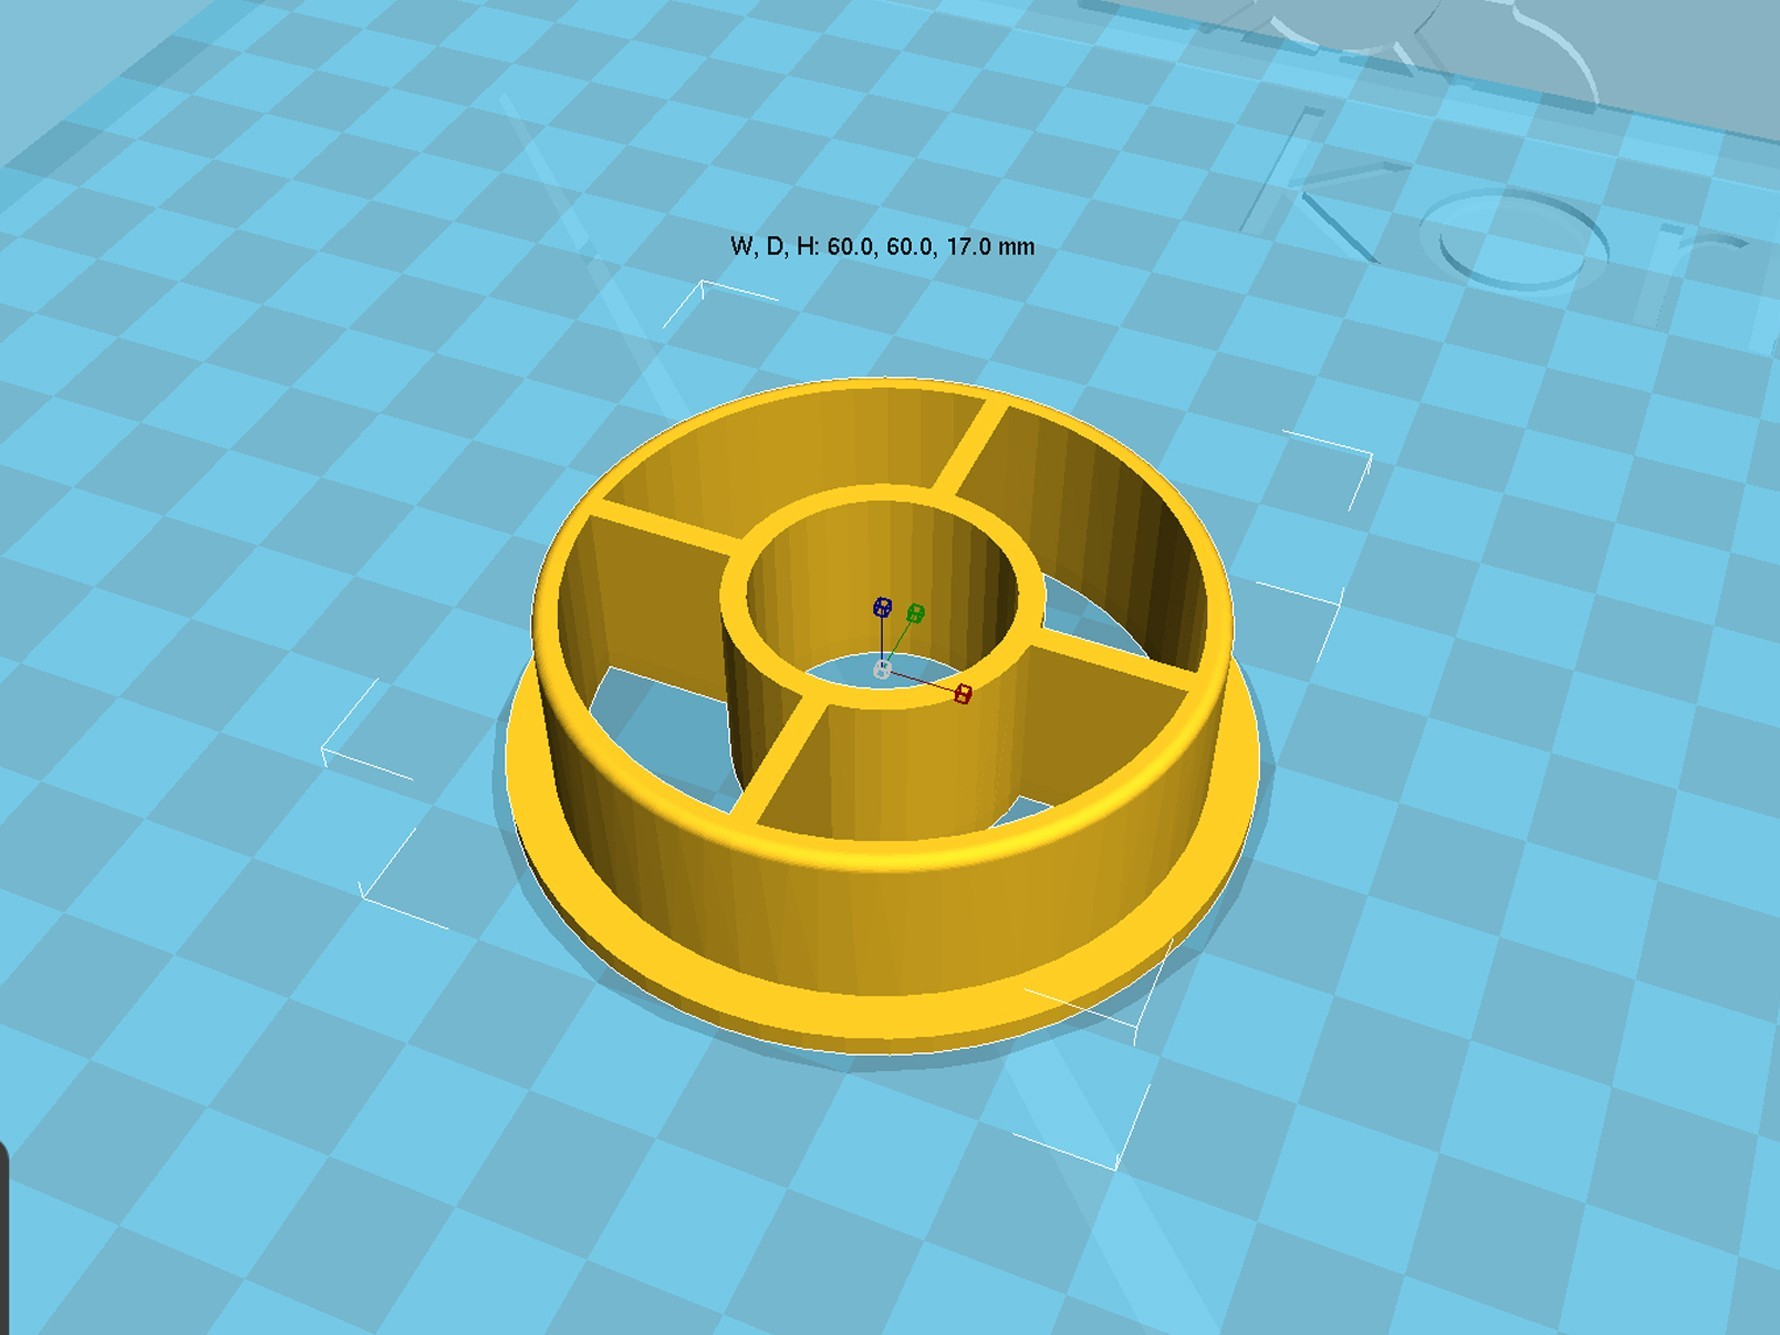 spool_adapter_53_in20.jpg Download free STL file 3d printer filament spool_adapter_53_in20 • 3D printable model, 3D_parts